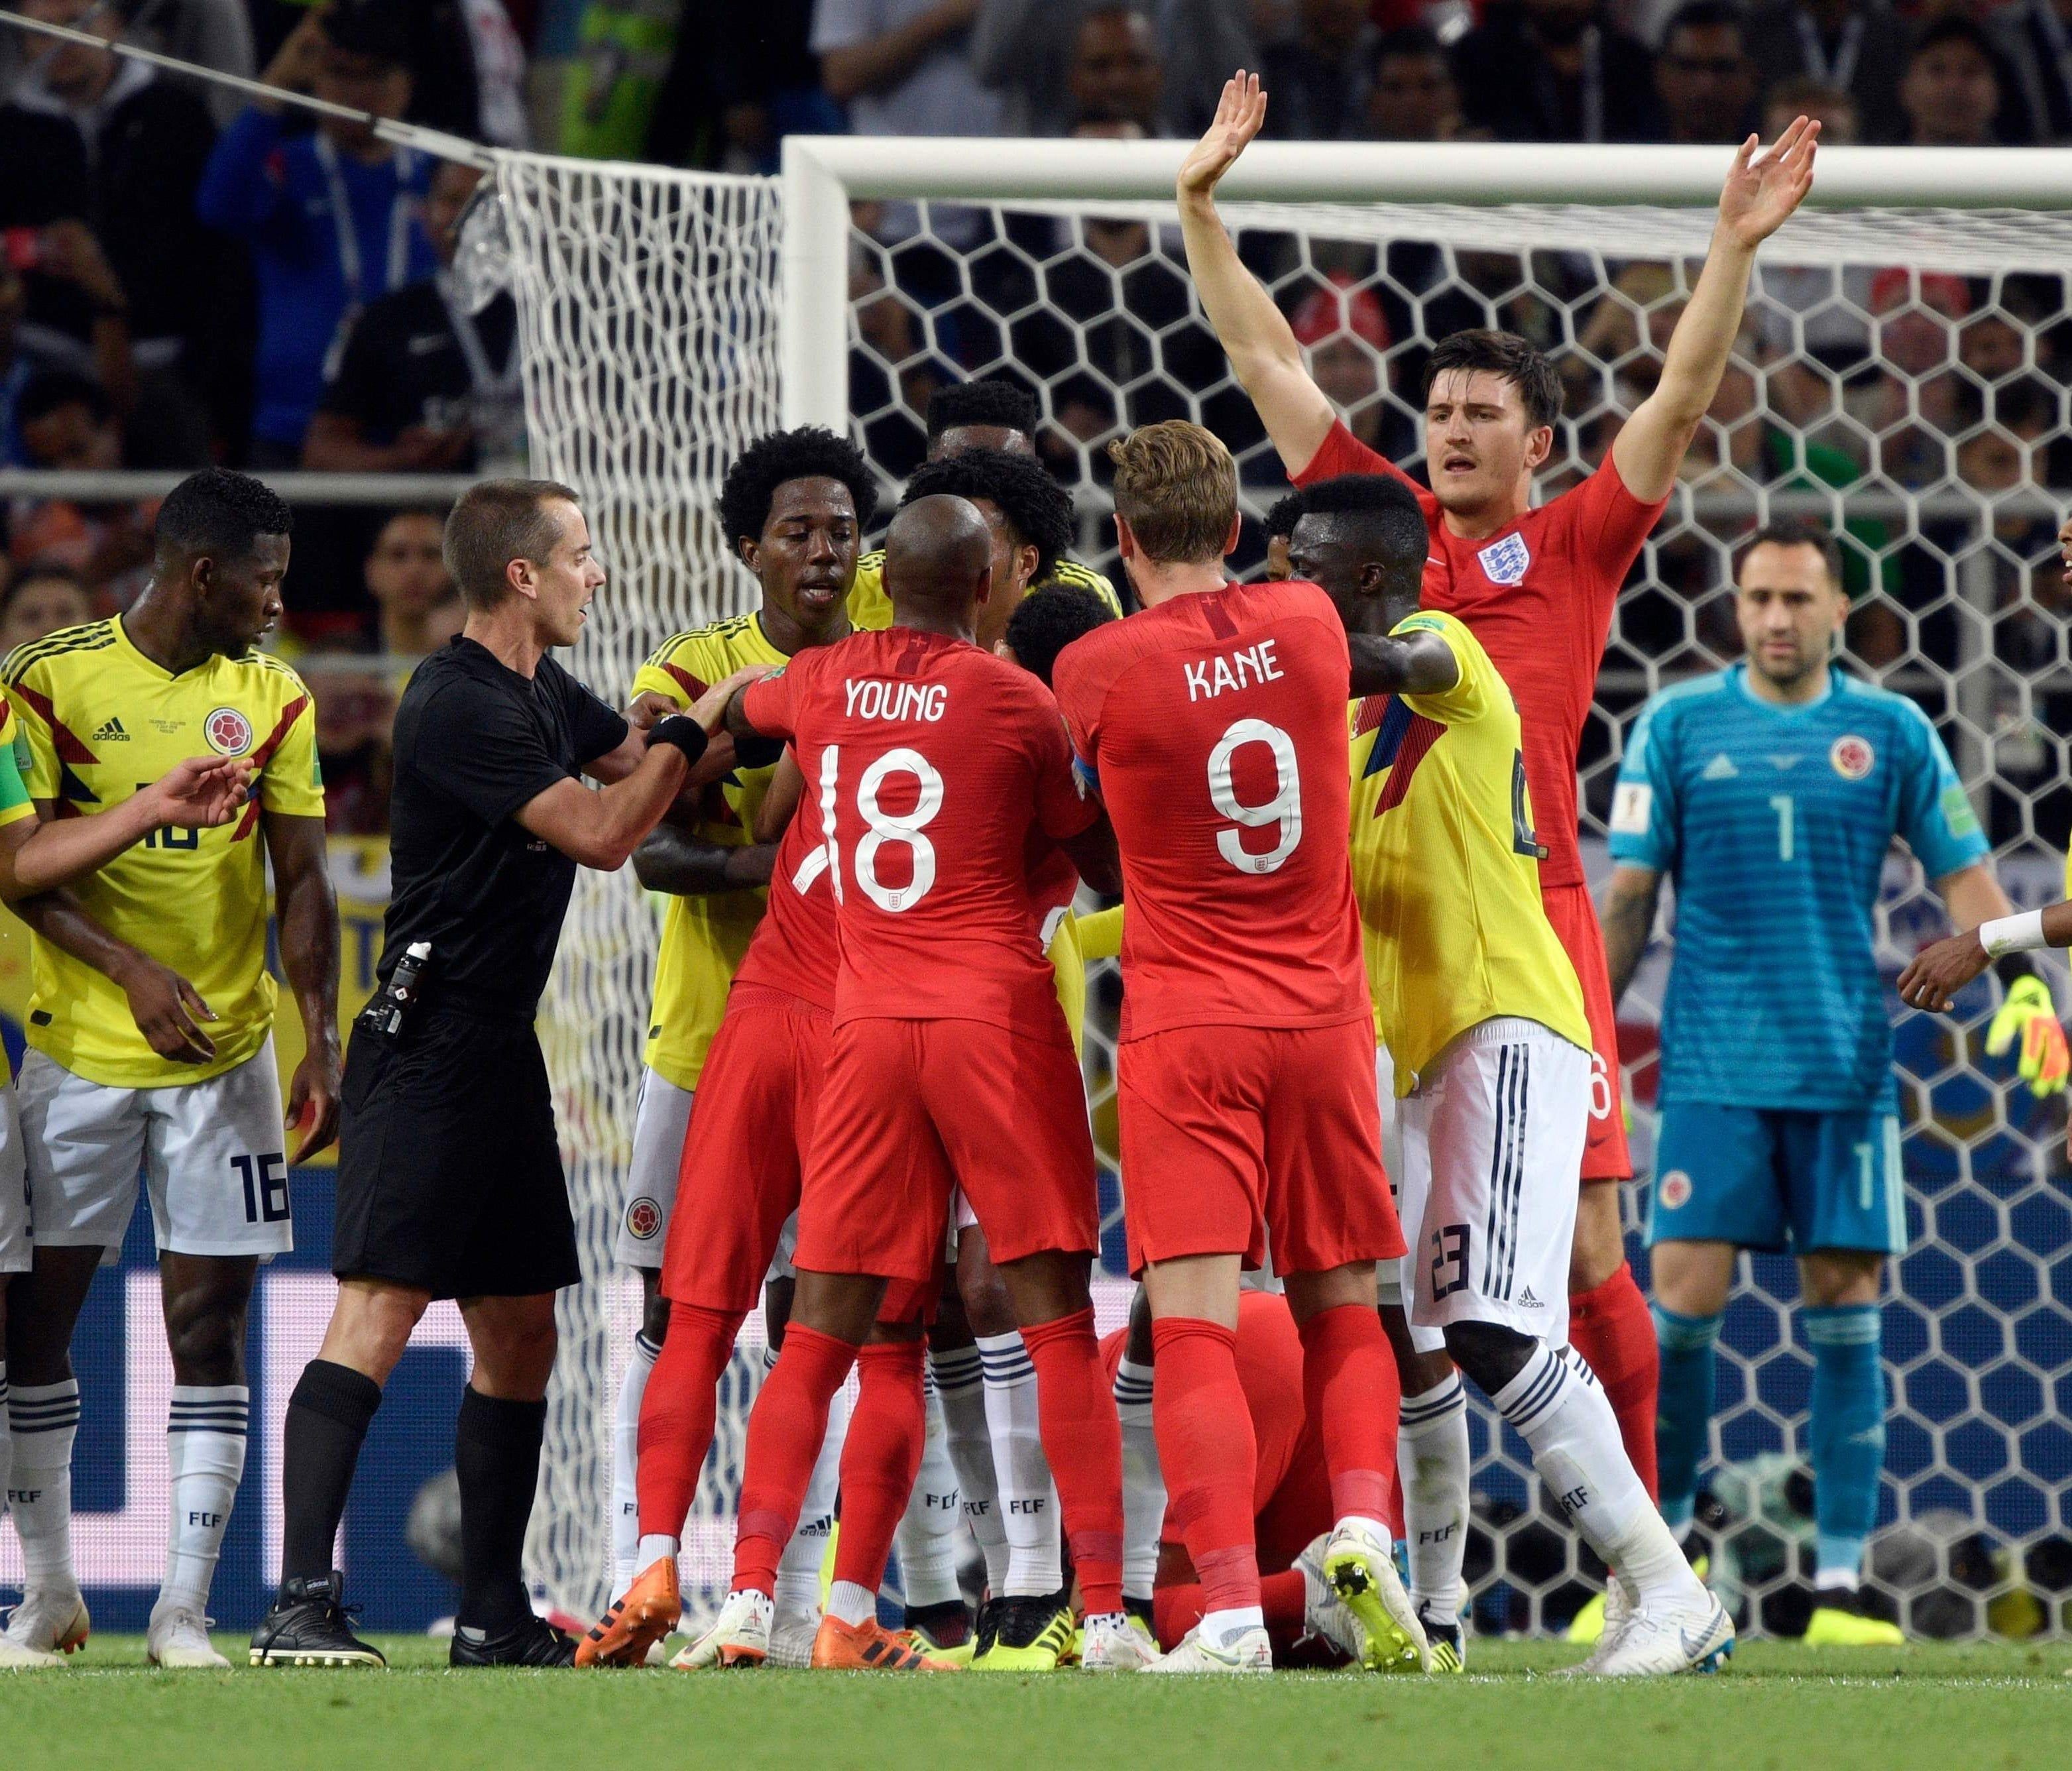 English and Colombian players quarrel as U.S. referee Mark Geiger tries to mediate during their World Cup match.